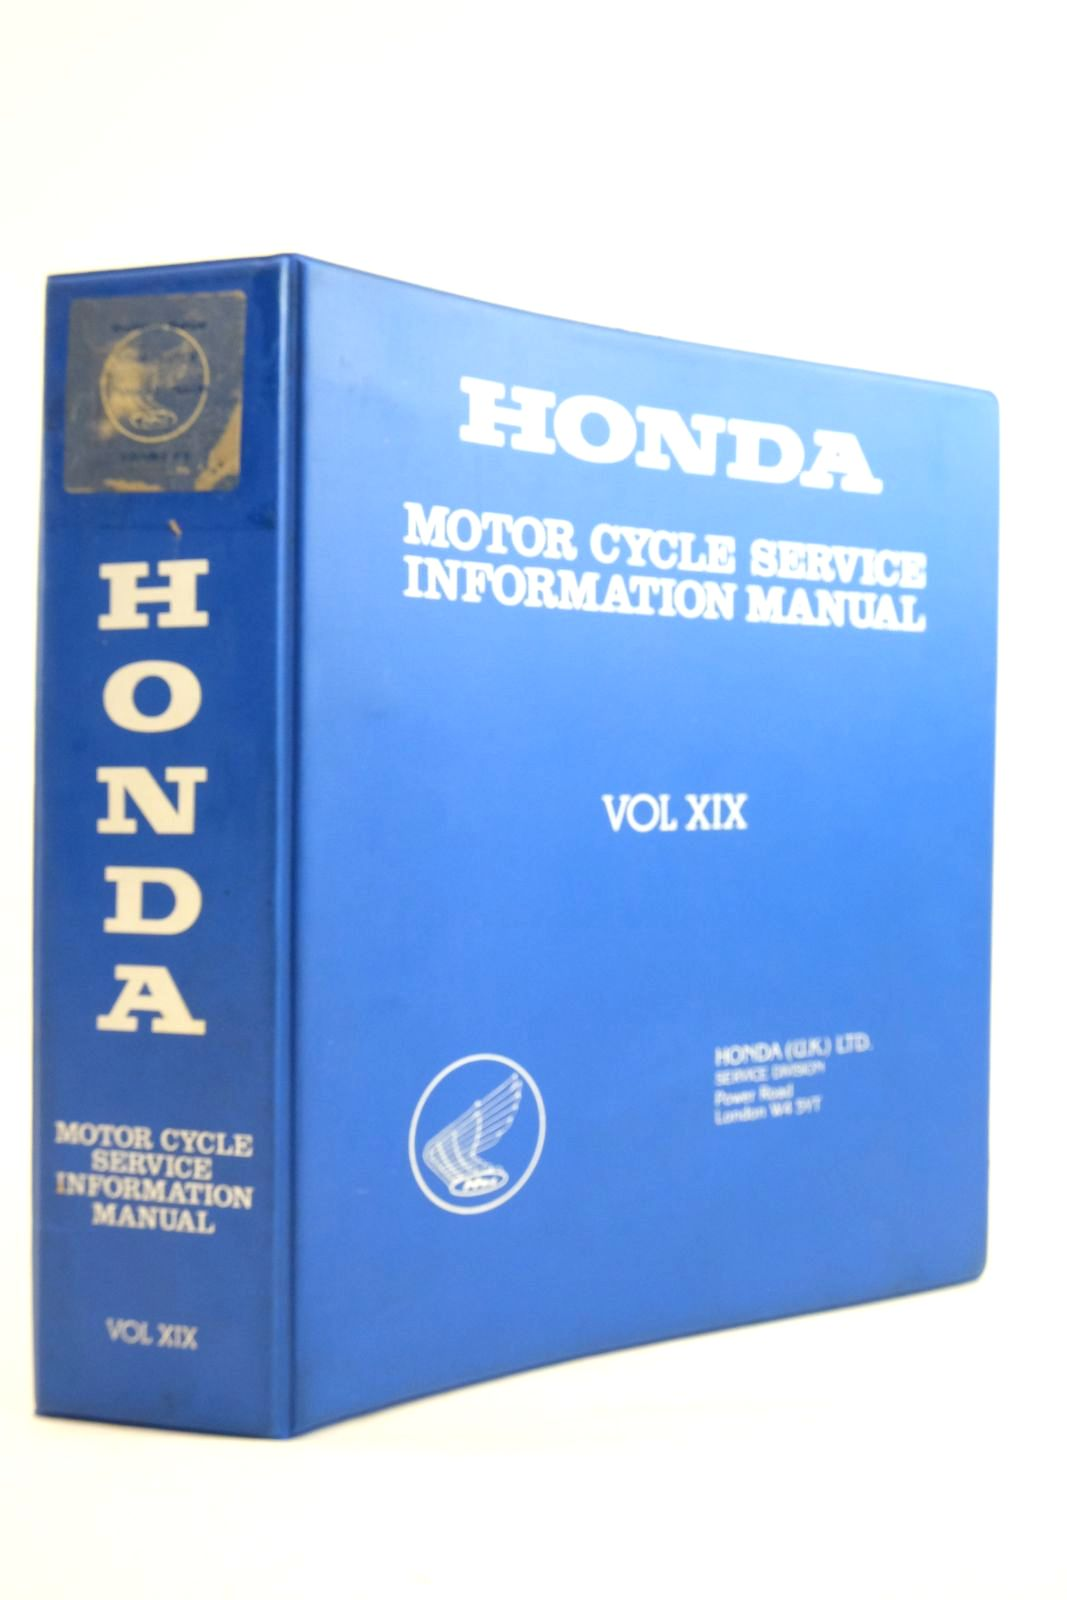 Photo of HONDA MOTOR CYCLE SERVICE INFORMATION MANUAL VOLUME XIX published by Honda (u.K.) Ltd. (STOCK CODE: 2134577)  for sale by Stella & Rose's Books